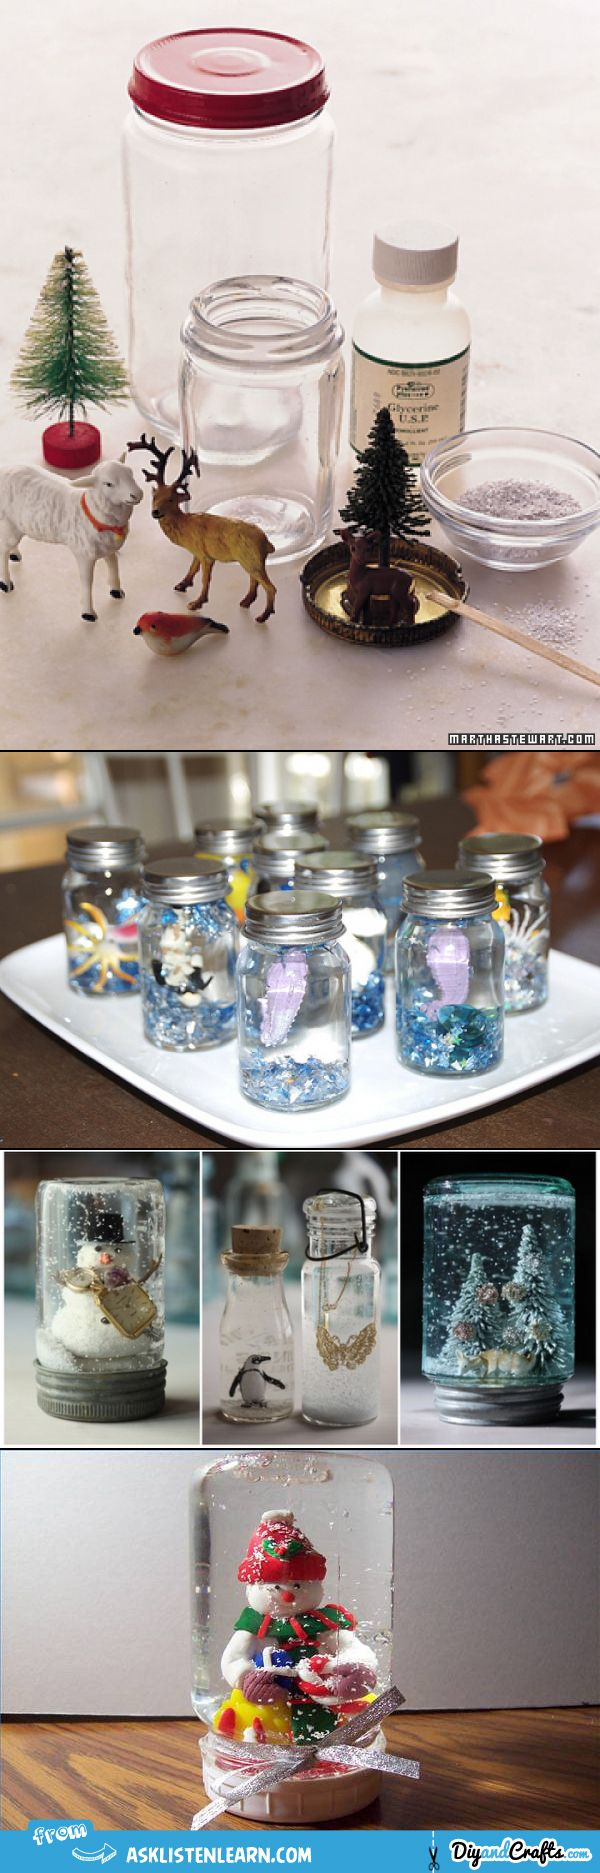 Make your own snow globe